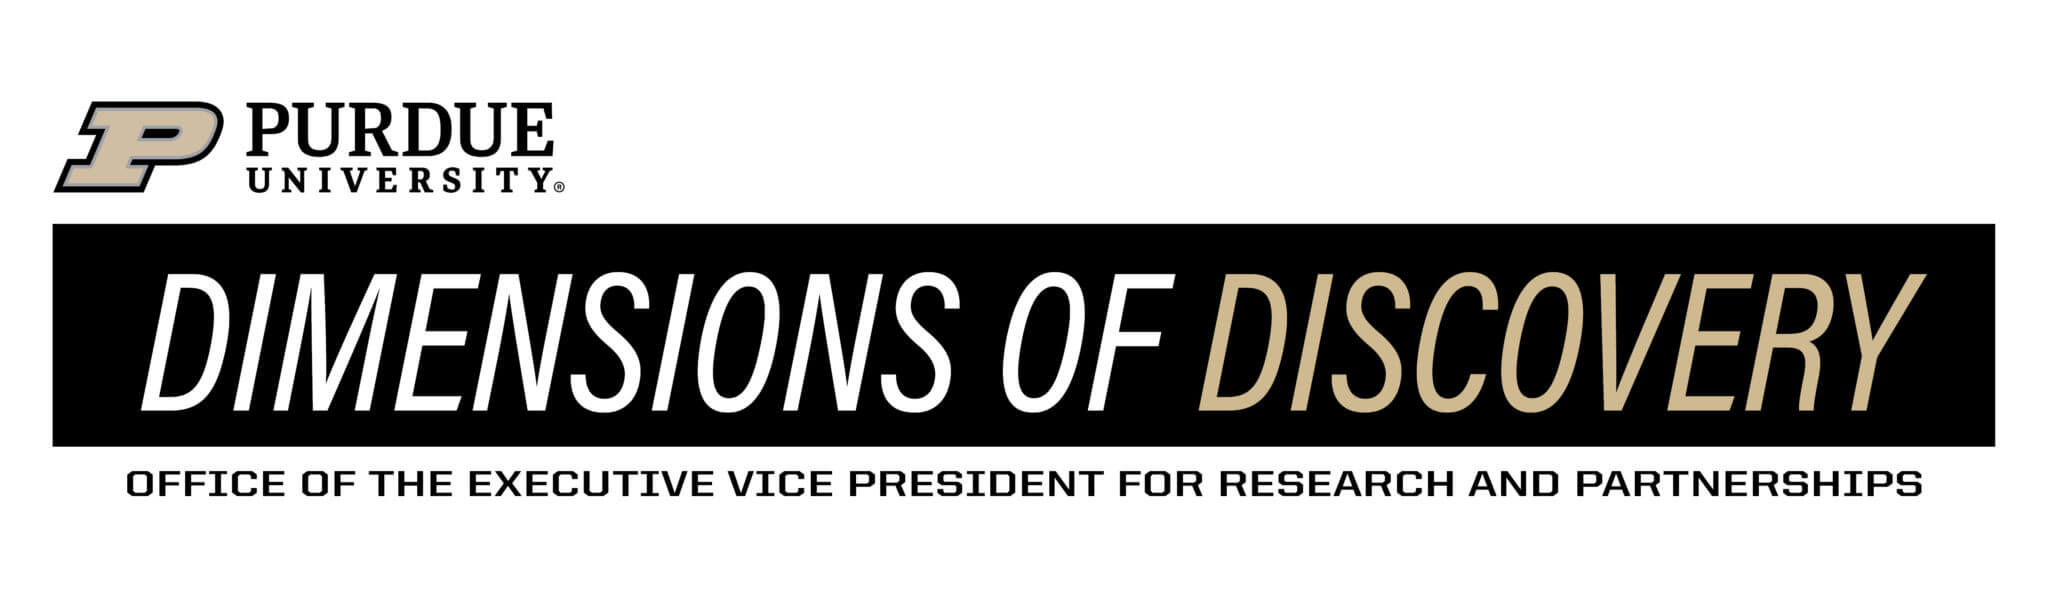 Dimensions of Discovery: Office of the Executive Vice President for Research and Partnerships